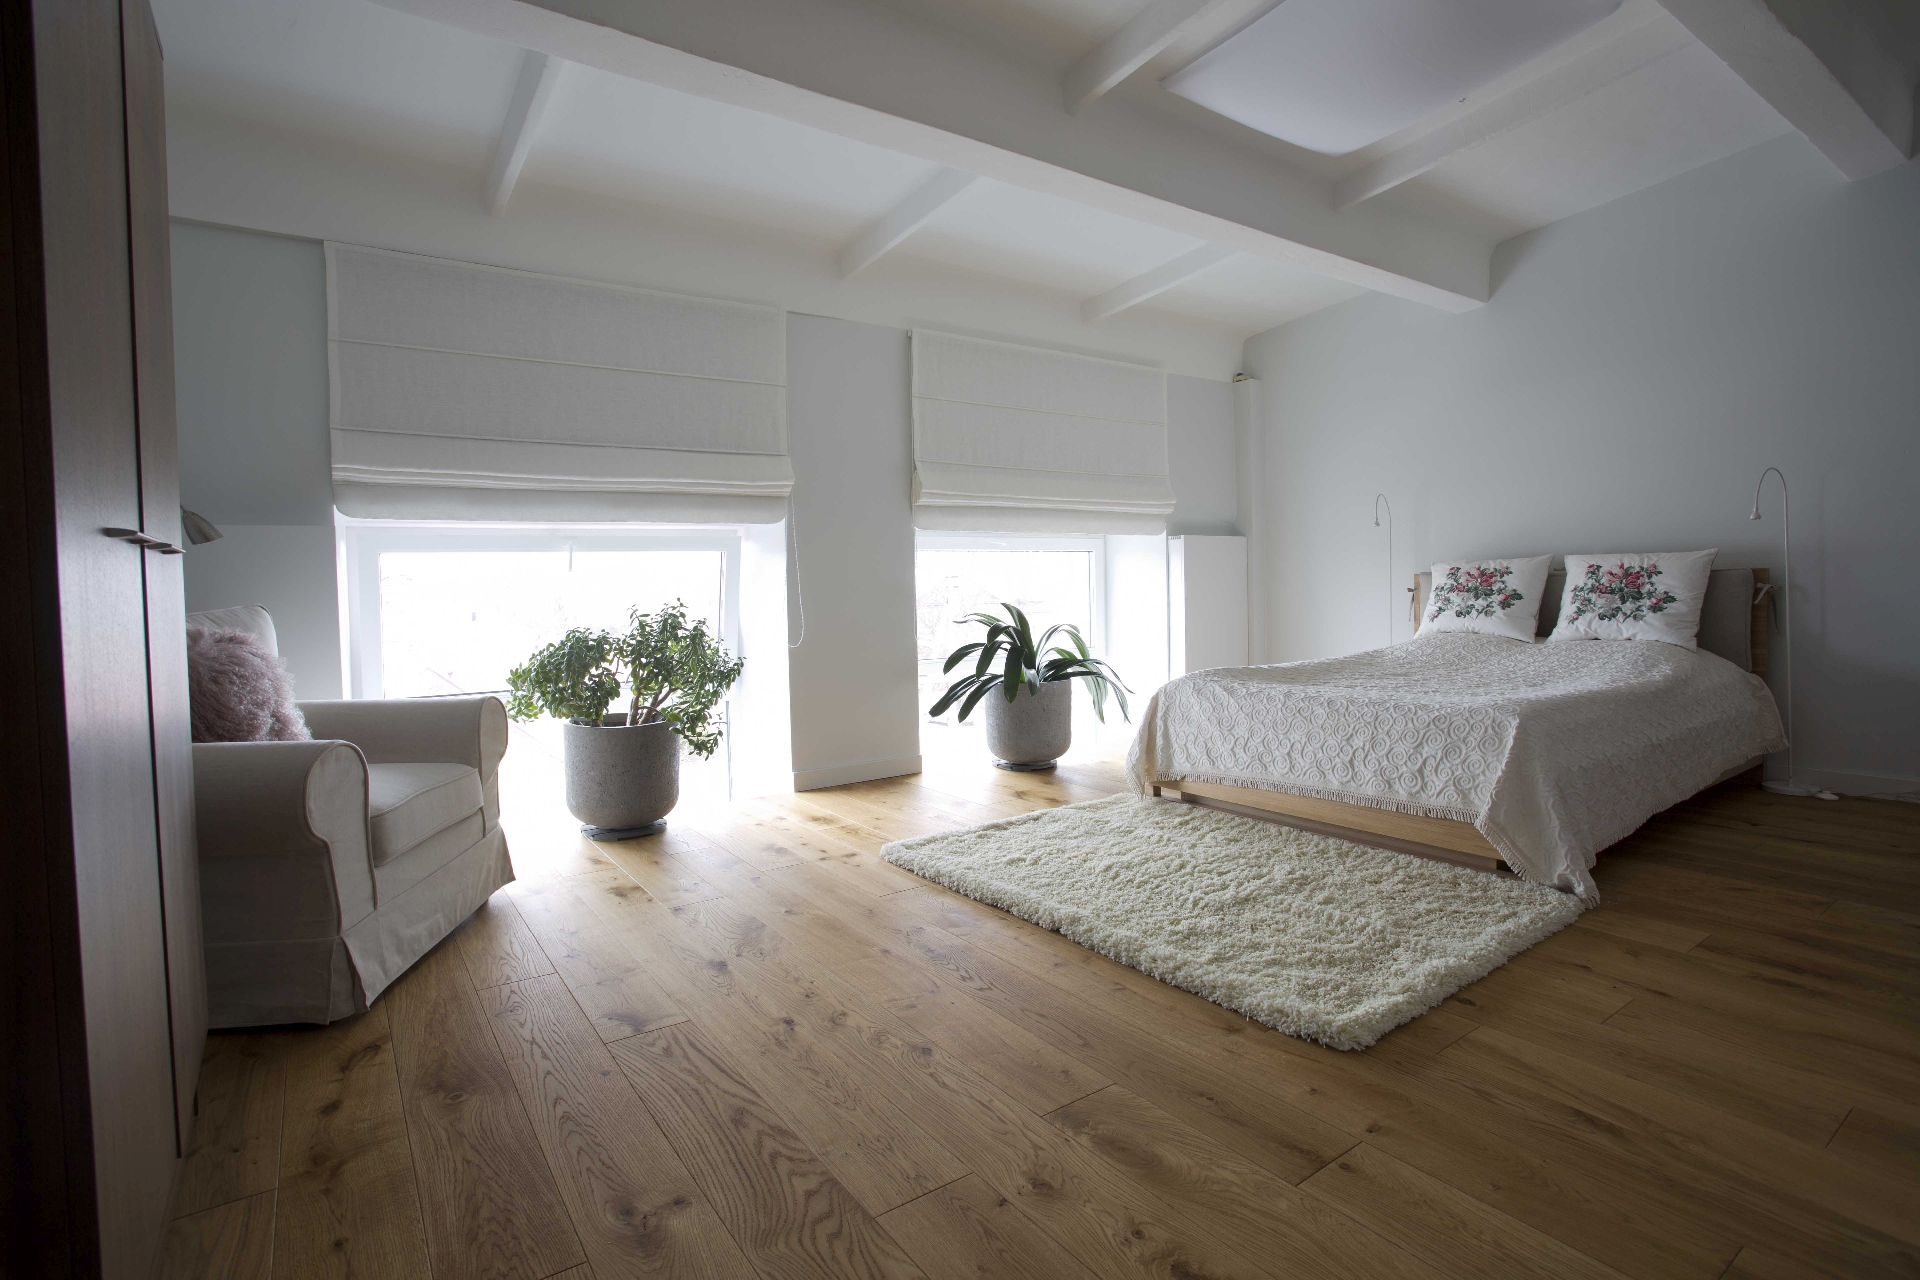 Loft. Oak floorboard, 3305 Colorless oil